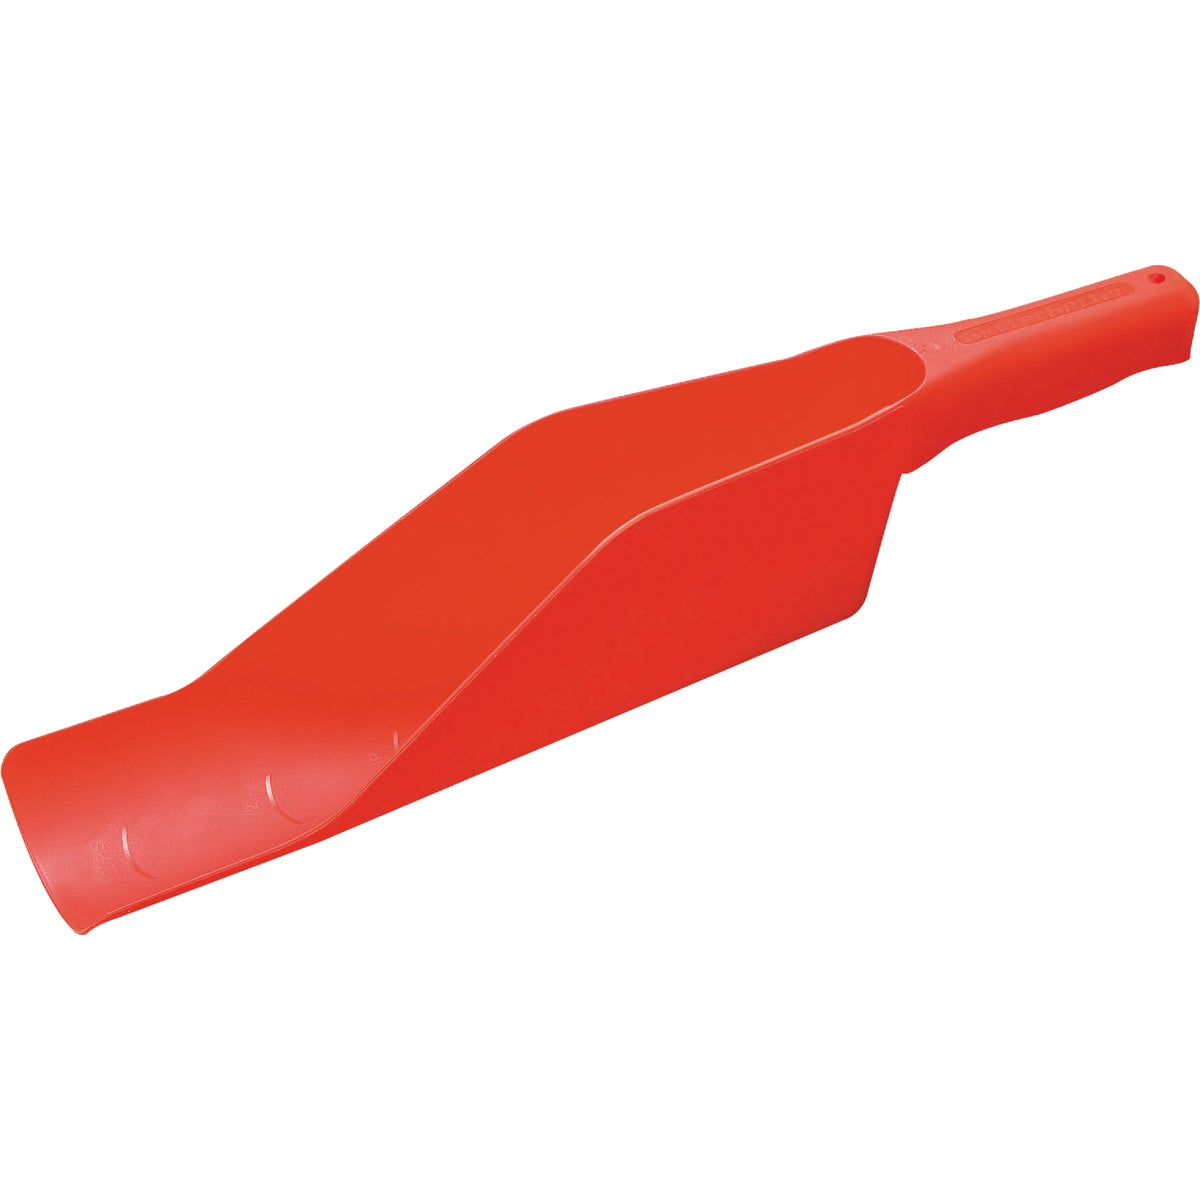 GUTTER SCOOP - LY306 by Amerimax Home Prod